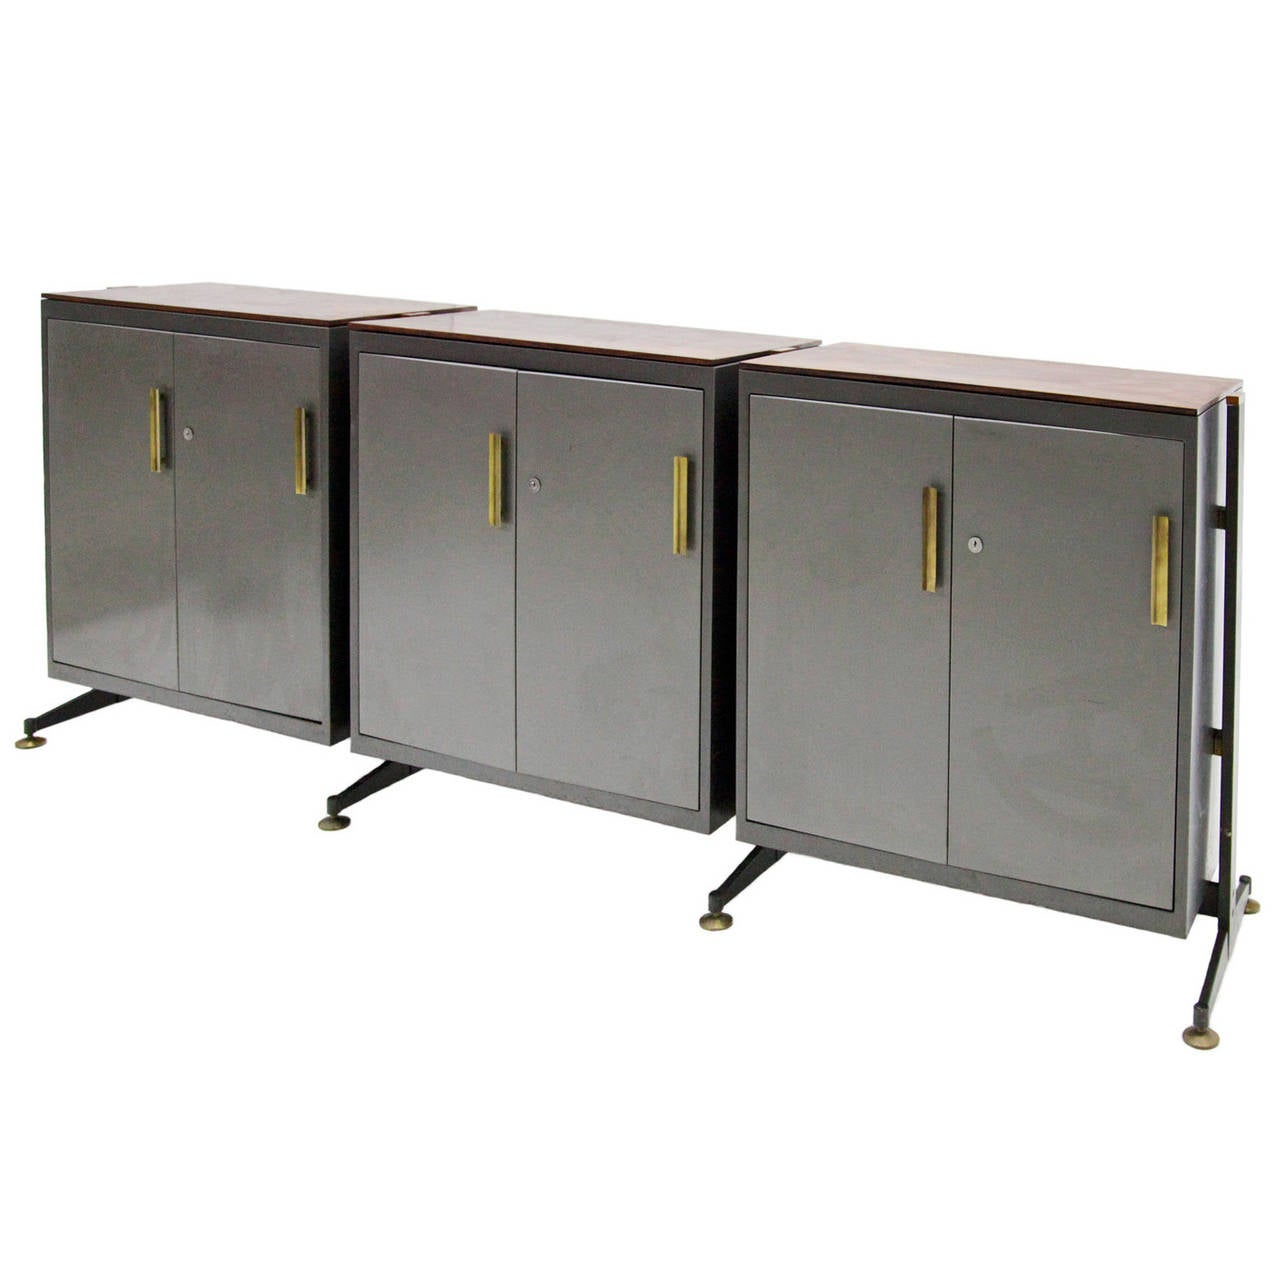 industrial sideboard in the style of osvaldo borsani from the 1970s at 1stdibs. Black Bedroom Furniture Sets. Home Design Ideas